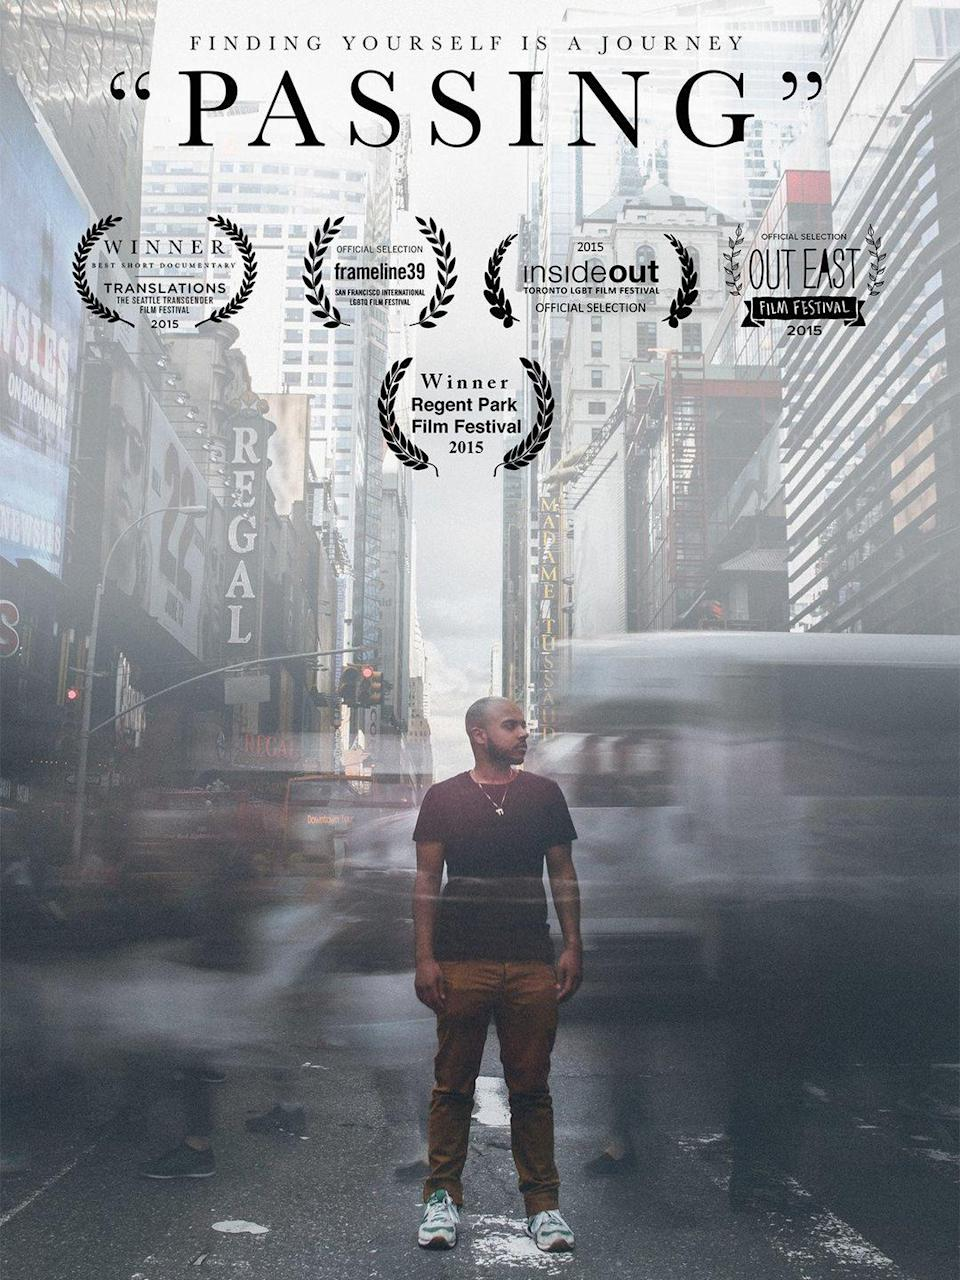 """<p>Following three trans men of color, this short documentary explores the intersectionality between race, gender and identity and the struggles that can come with living authentically as a multiply marginalized person.</p><p><a class=""""link rapid-noclick-resp"""" href=""""https://www.amazon.com/Passing-Victor-Thomas/dp/B01GEVOEGO?tag=syn-yahoo-20&ascsubtag=%5Bartid%7C10055.g.36107109%5Bsrc%7Cyahoo-us"""" rel=""""nofollow noopener"""" target=""""_blank"""" data-ylk=""""slk:WATCH NOW"""">WATCH NOW</a></p>"""